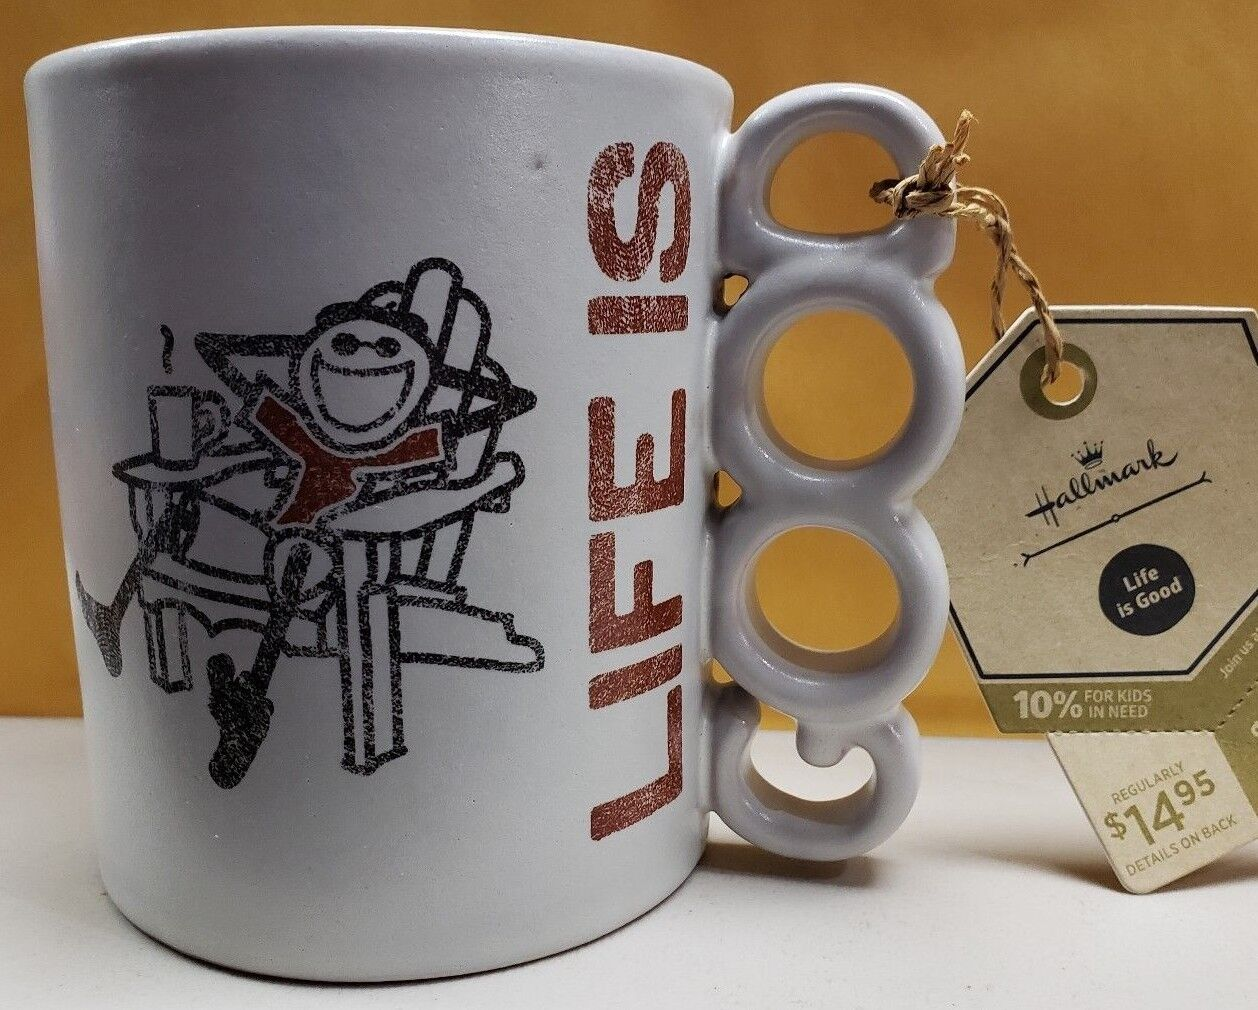 Life Is Good Mug, Hallmark, New - $7.25